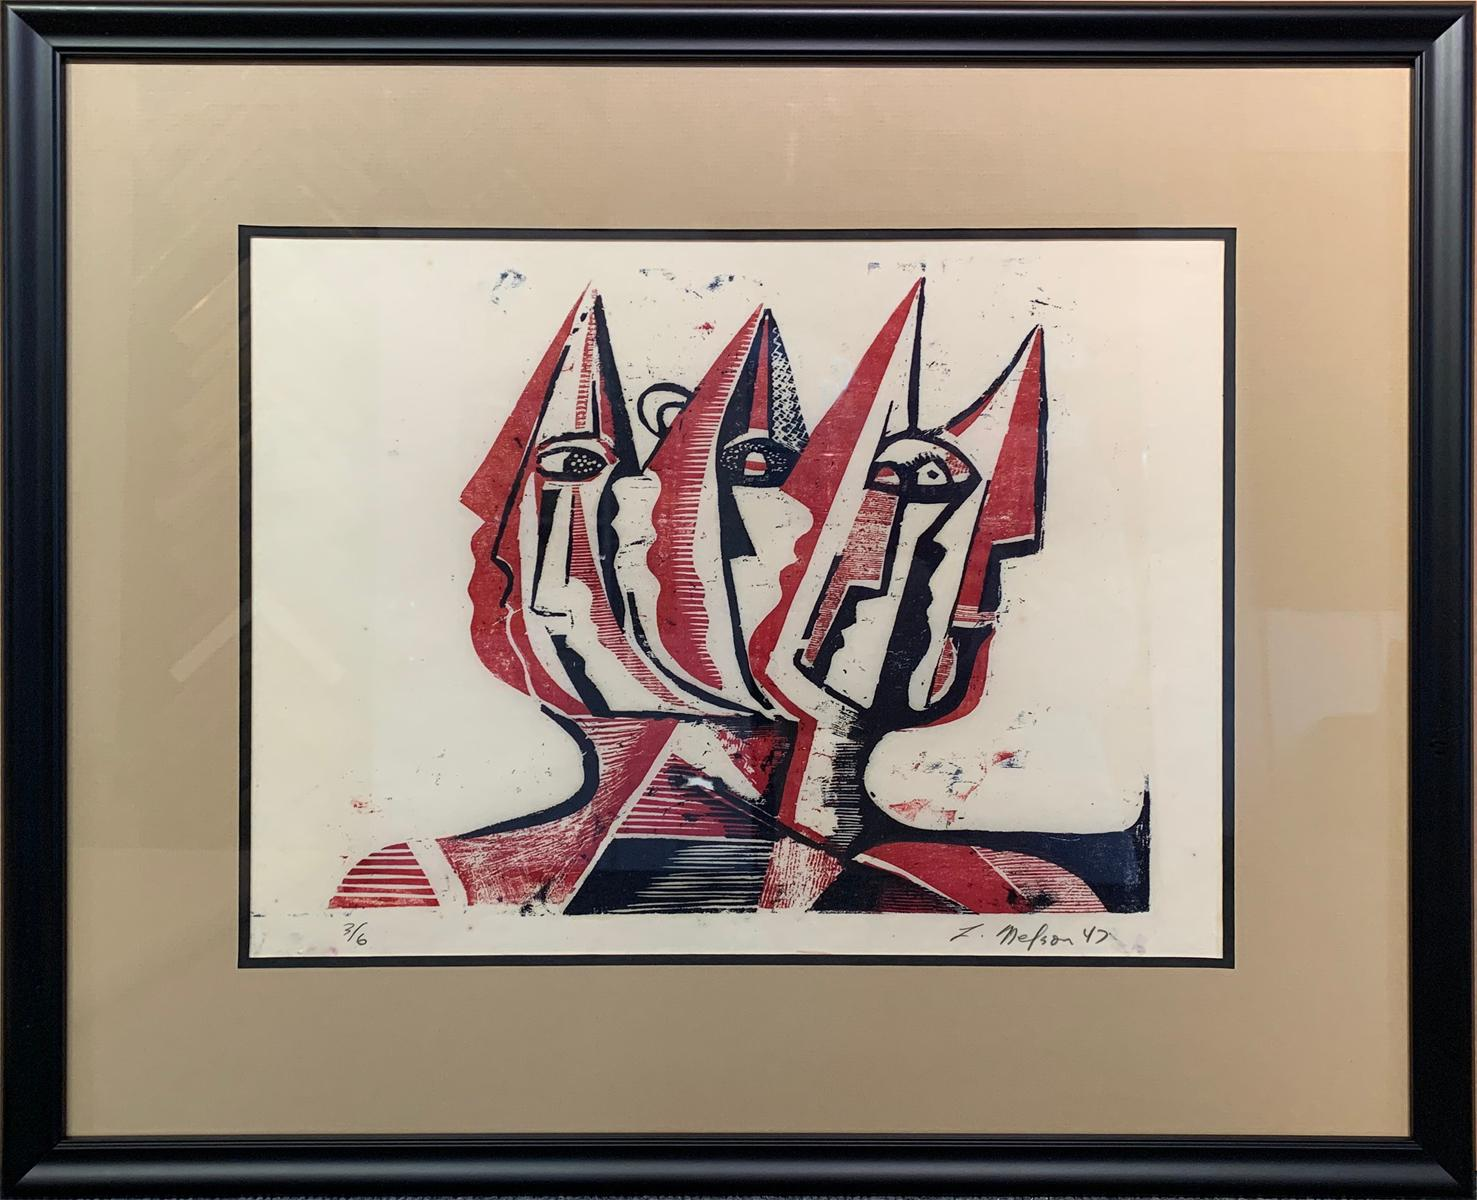 Three Figures, Abstract Figurative Art, Woodblock Print in Red, Signed, 1947